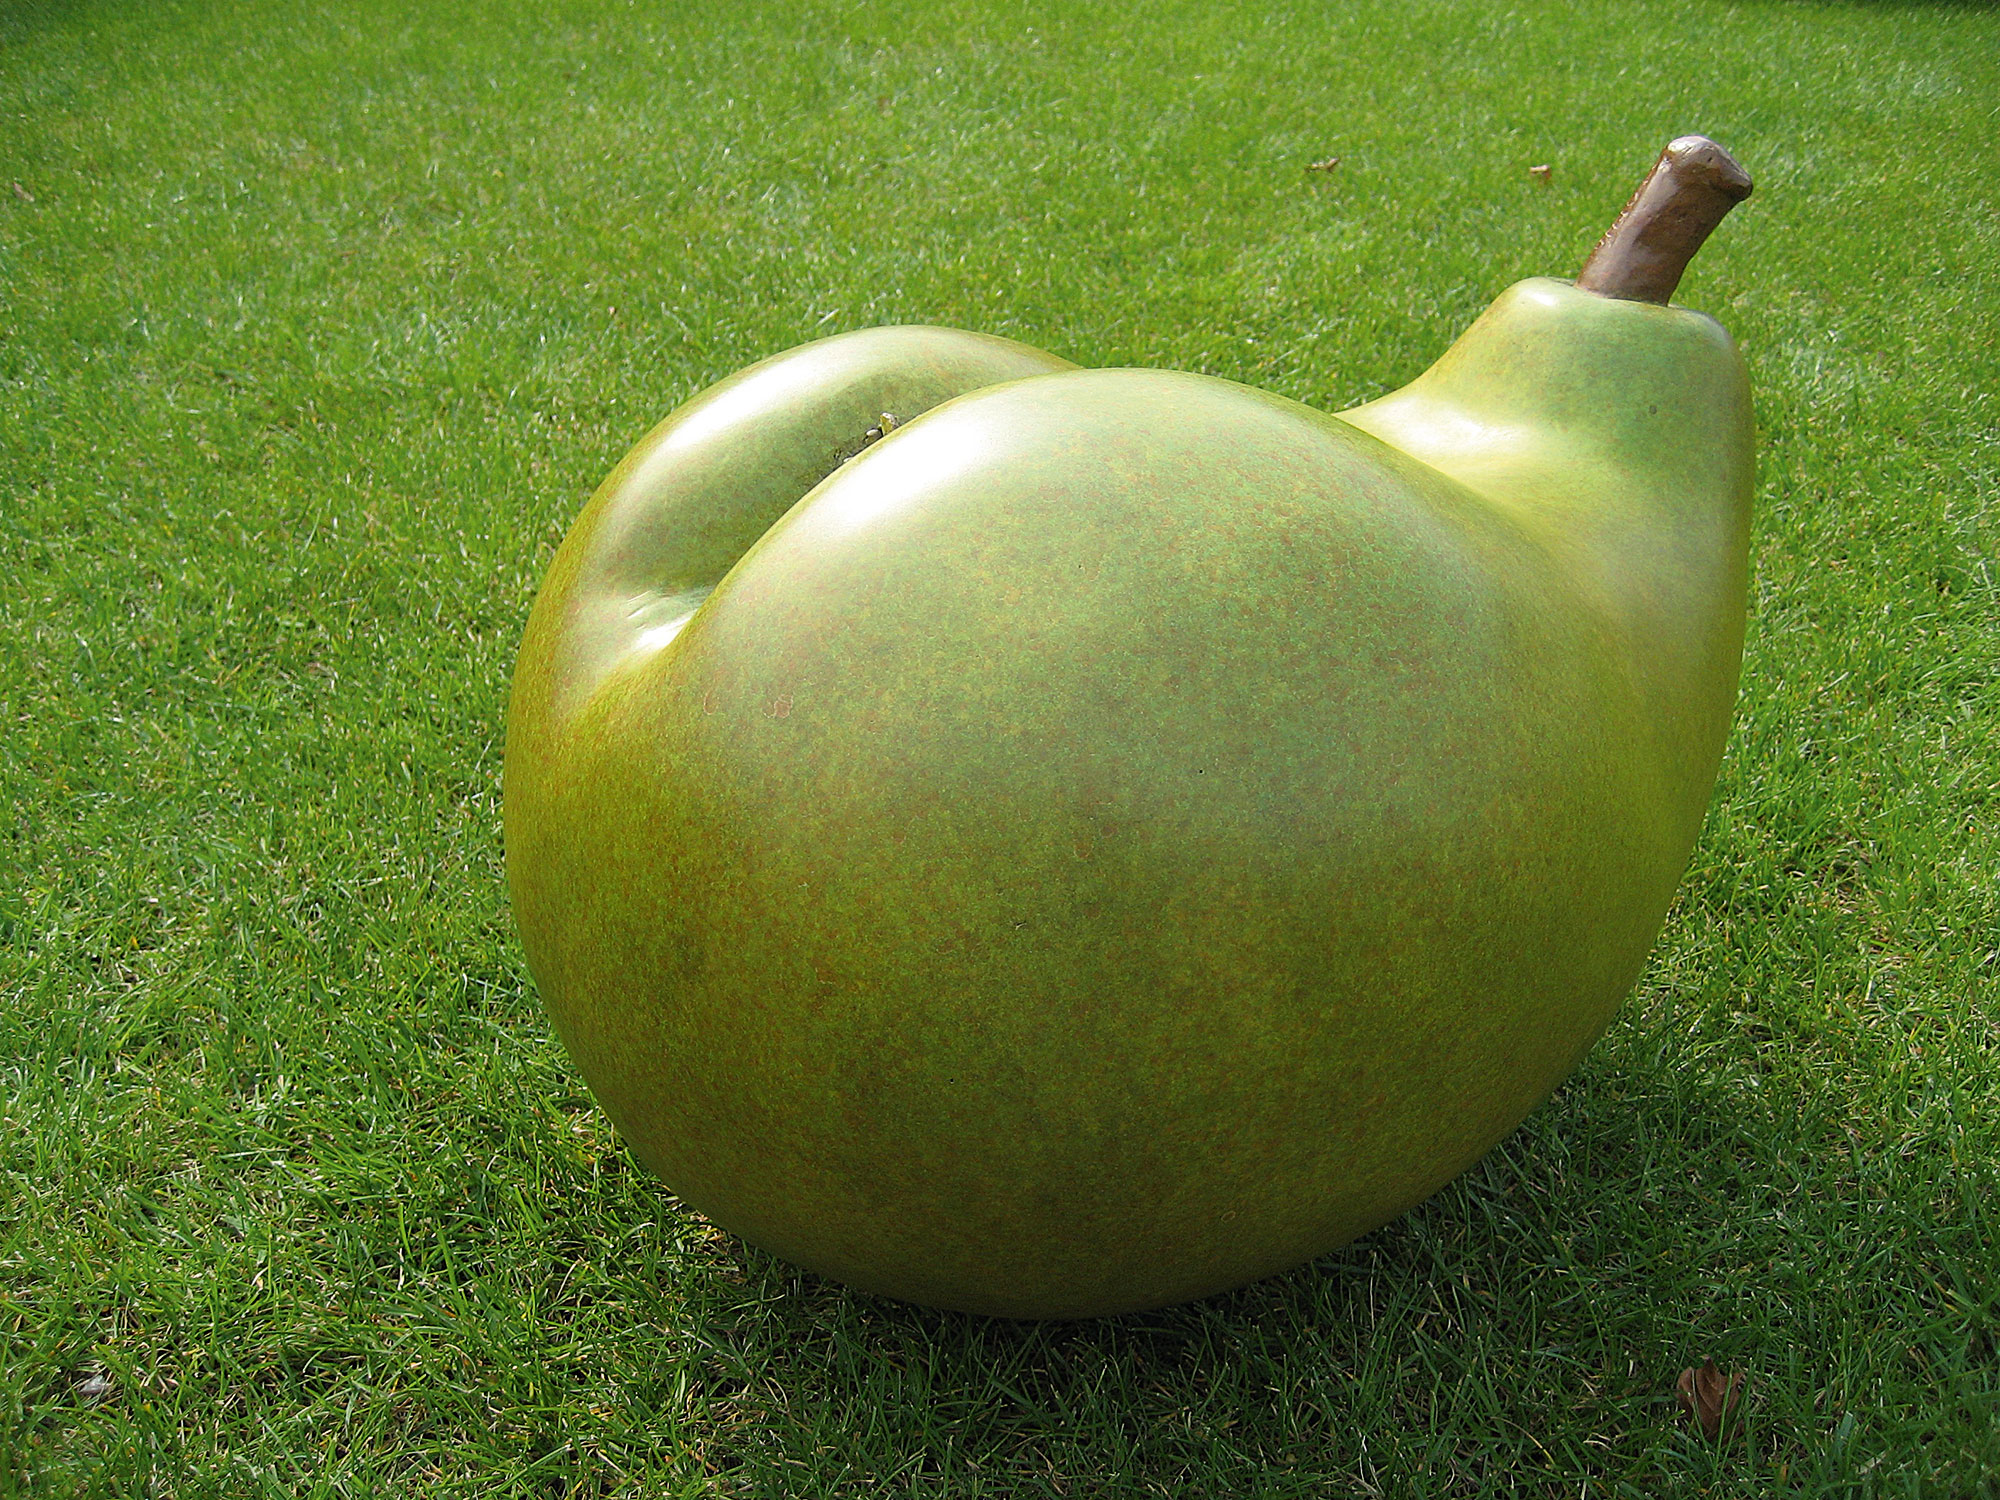 pear-on-grass